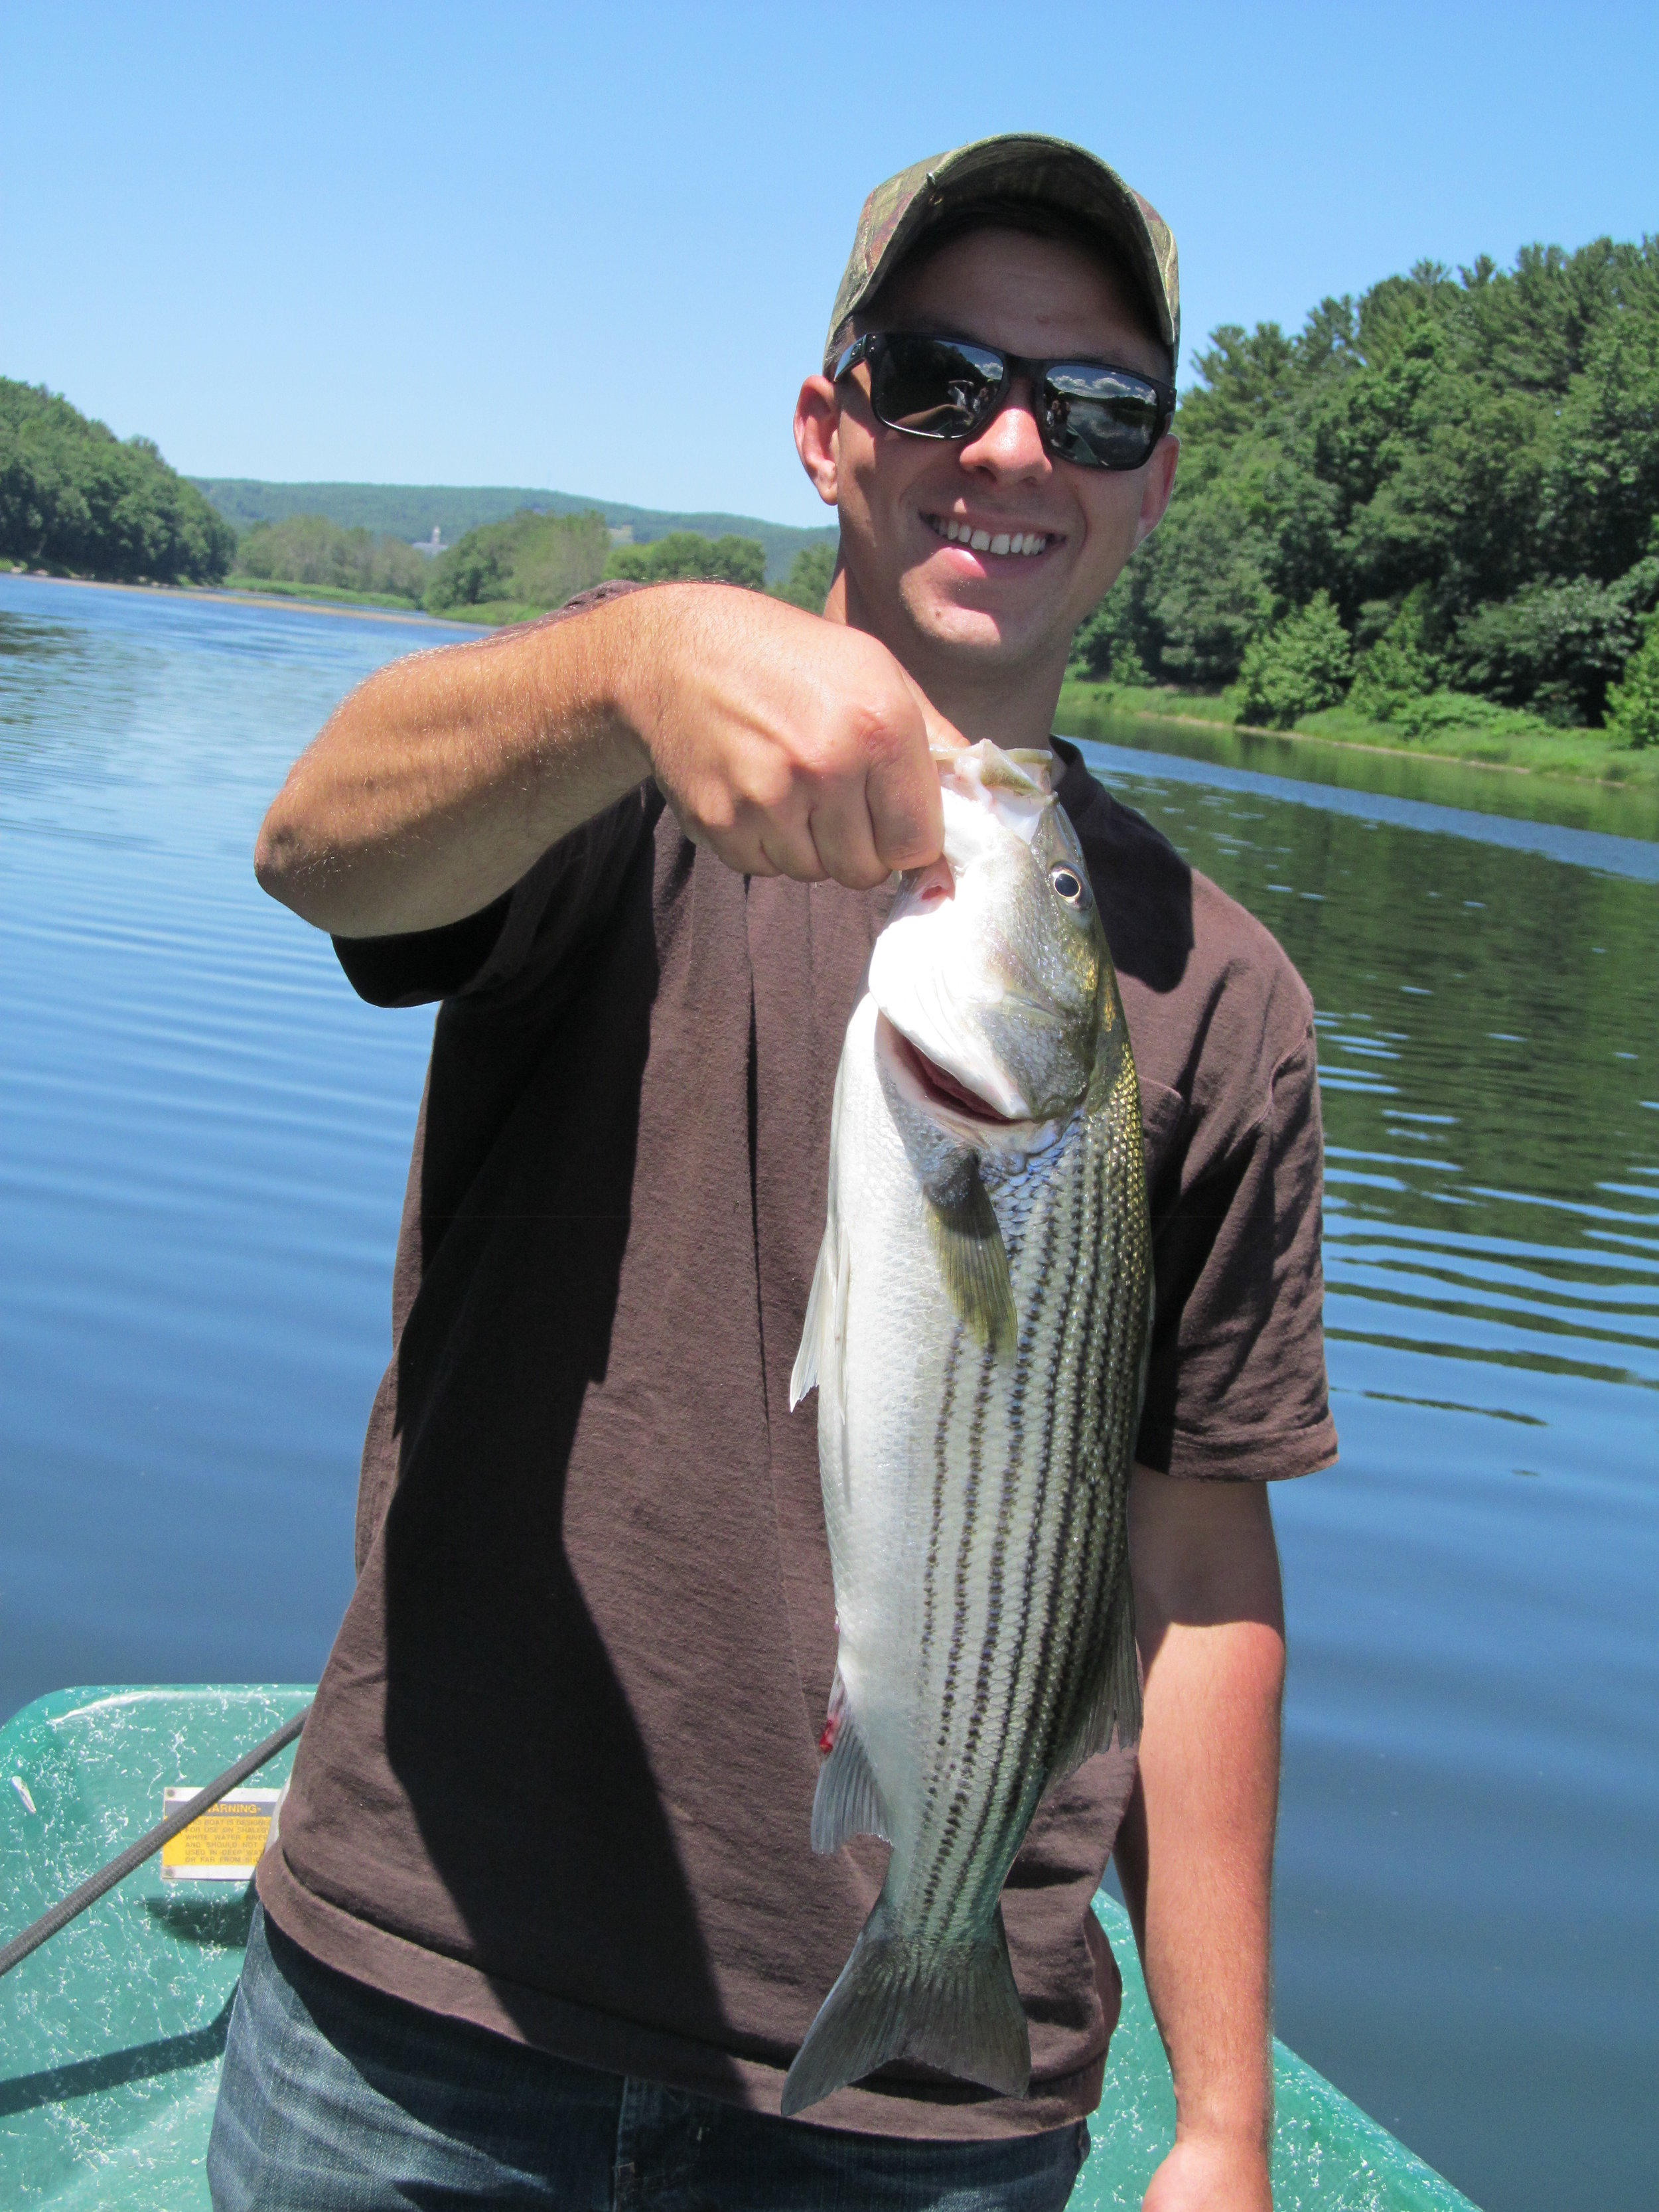 Stripers can be caught 300 miles from the ocean on the Upper Delaware River